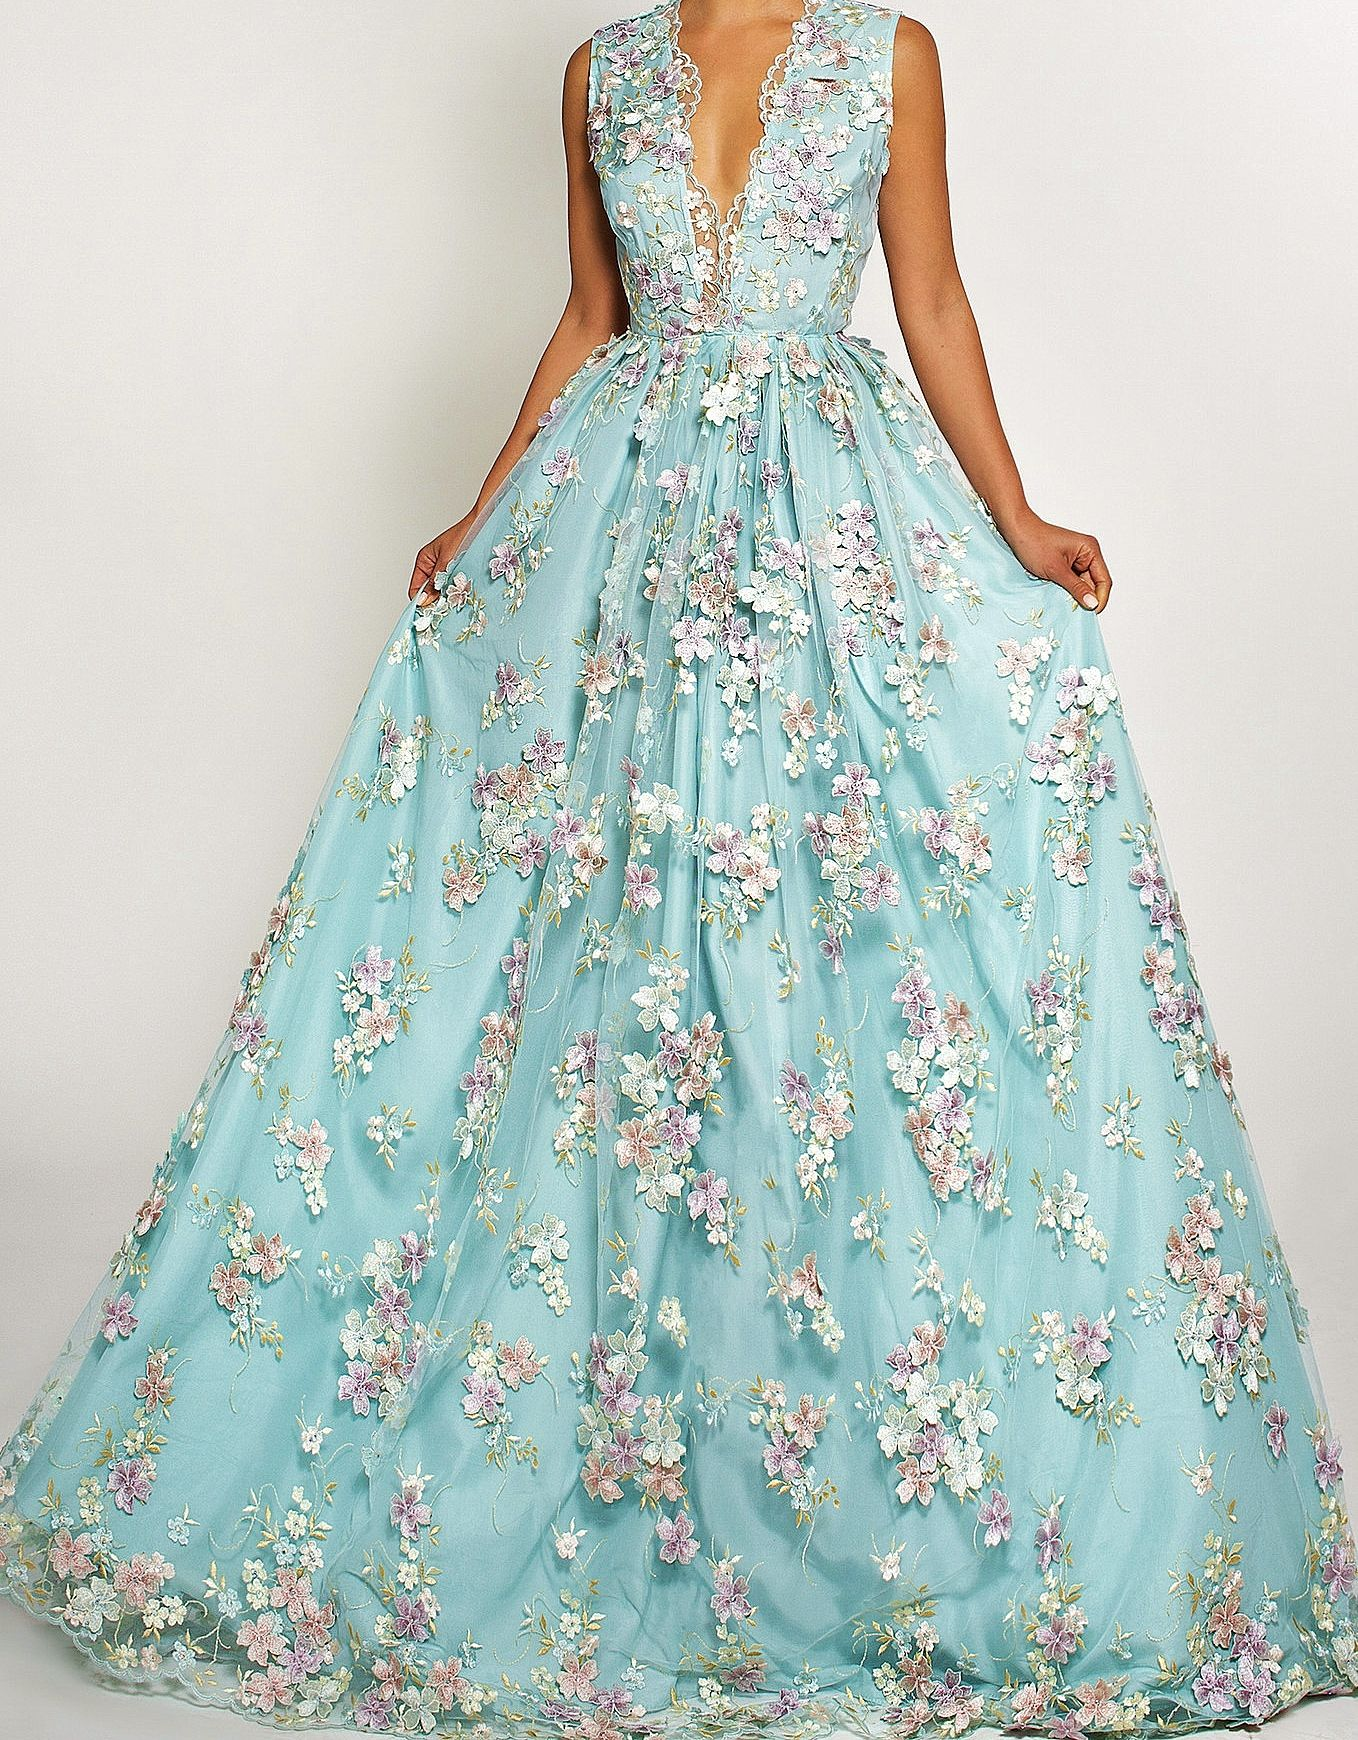 Pin by Michaela on Prom | Pinterest | Ball gowns, Prom and Gowns